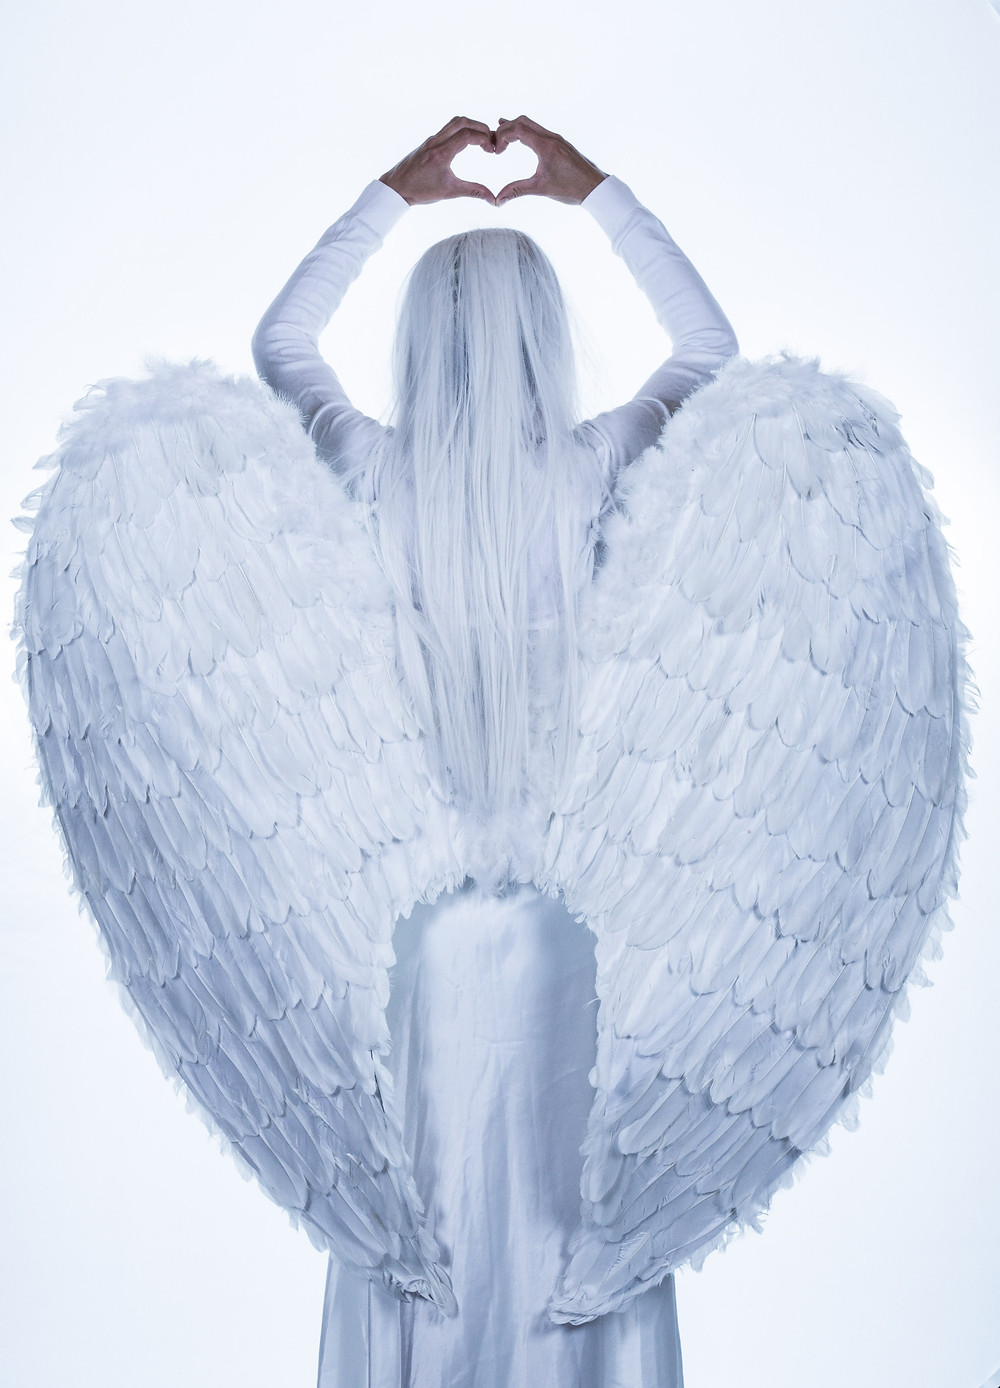 Angel making heart with hands